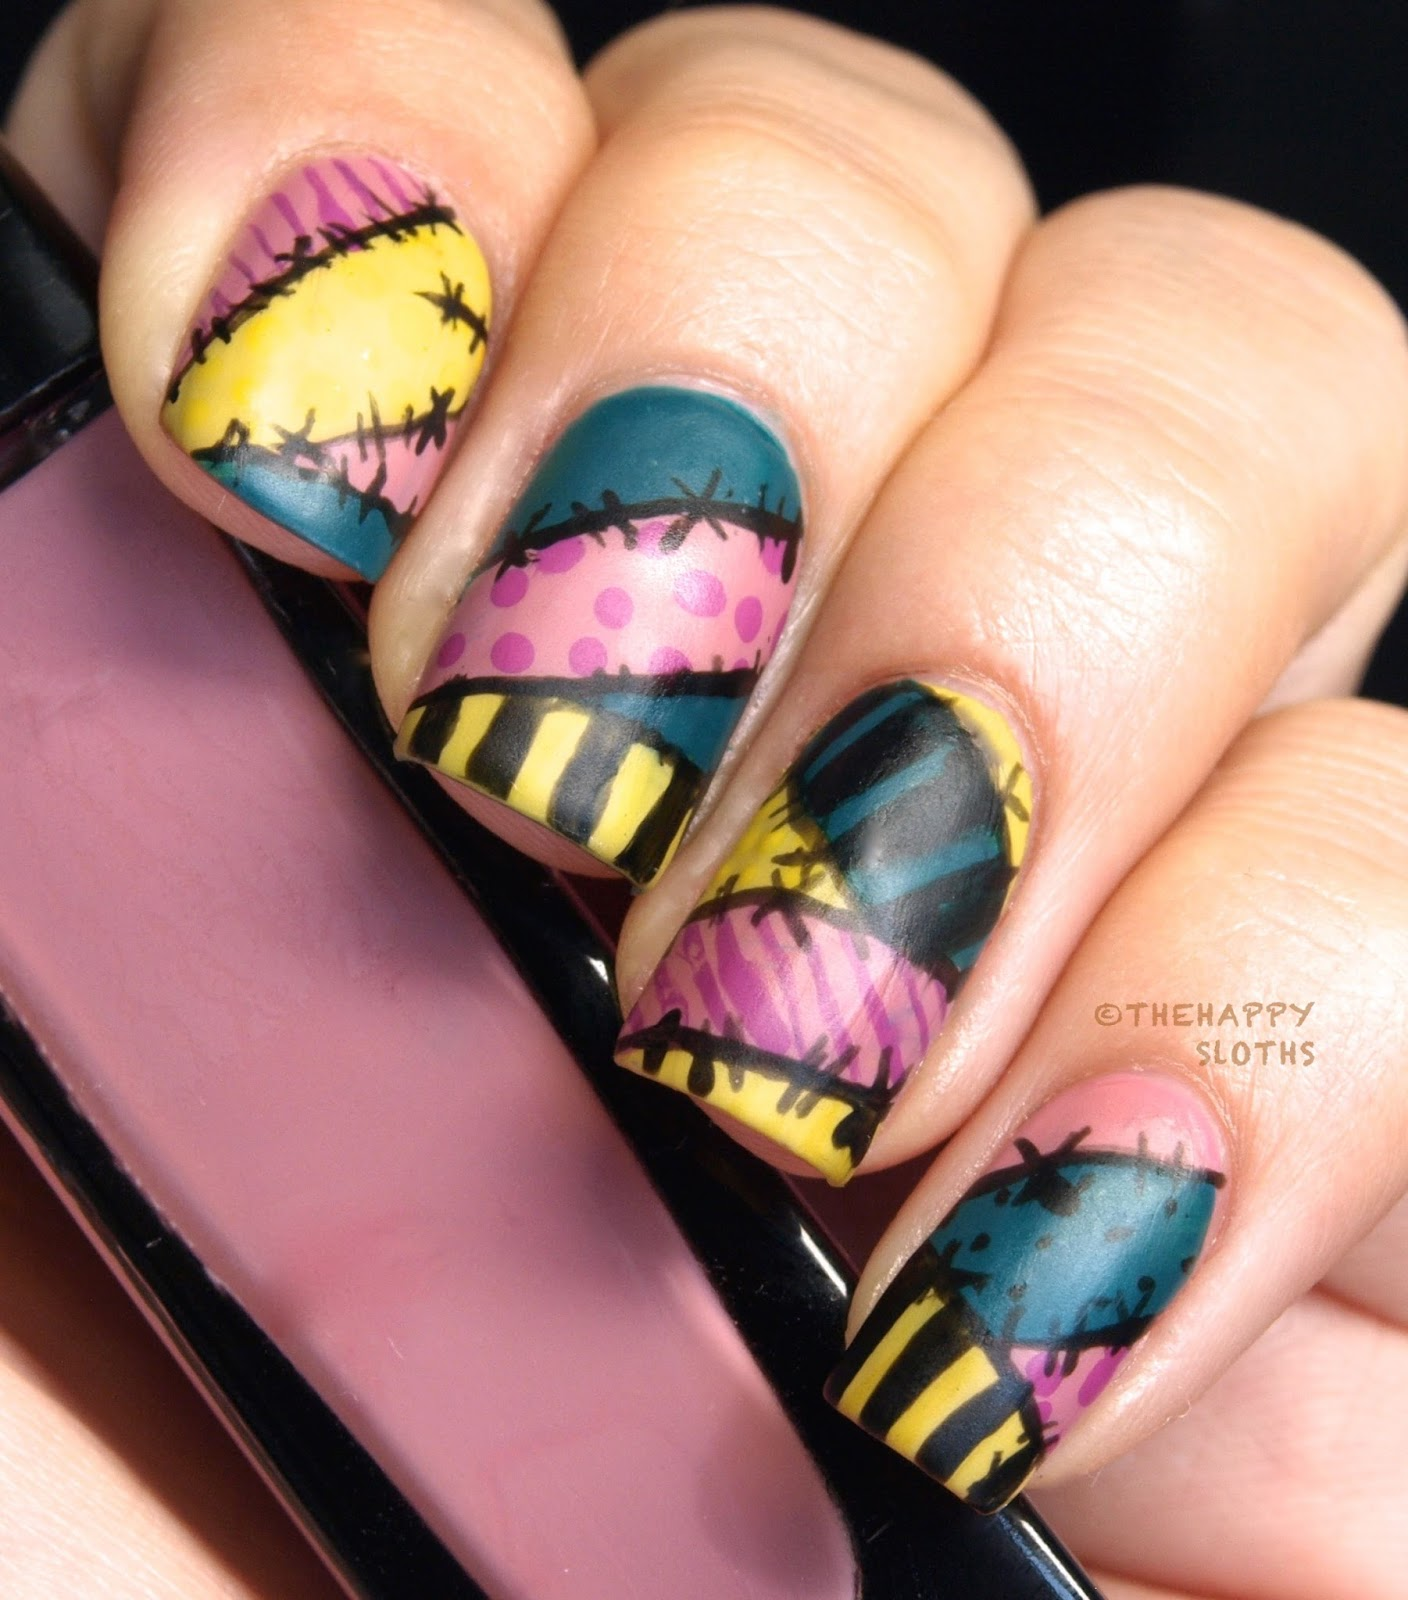 Nightmare Before Christmas Sally Nails - The Nightmare Before Christmas Sally Manicure: My Nail Polish Canada